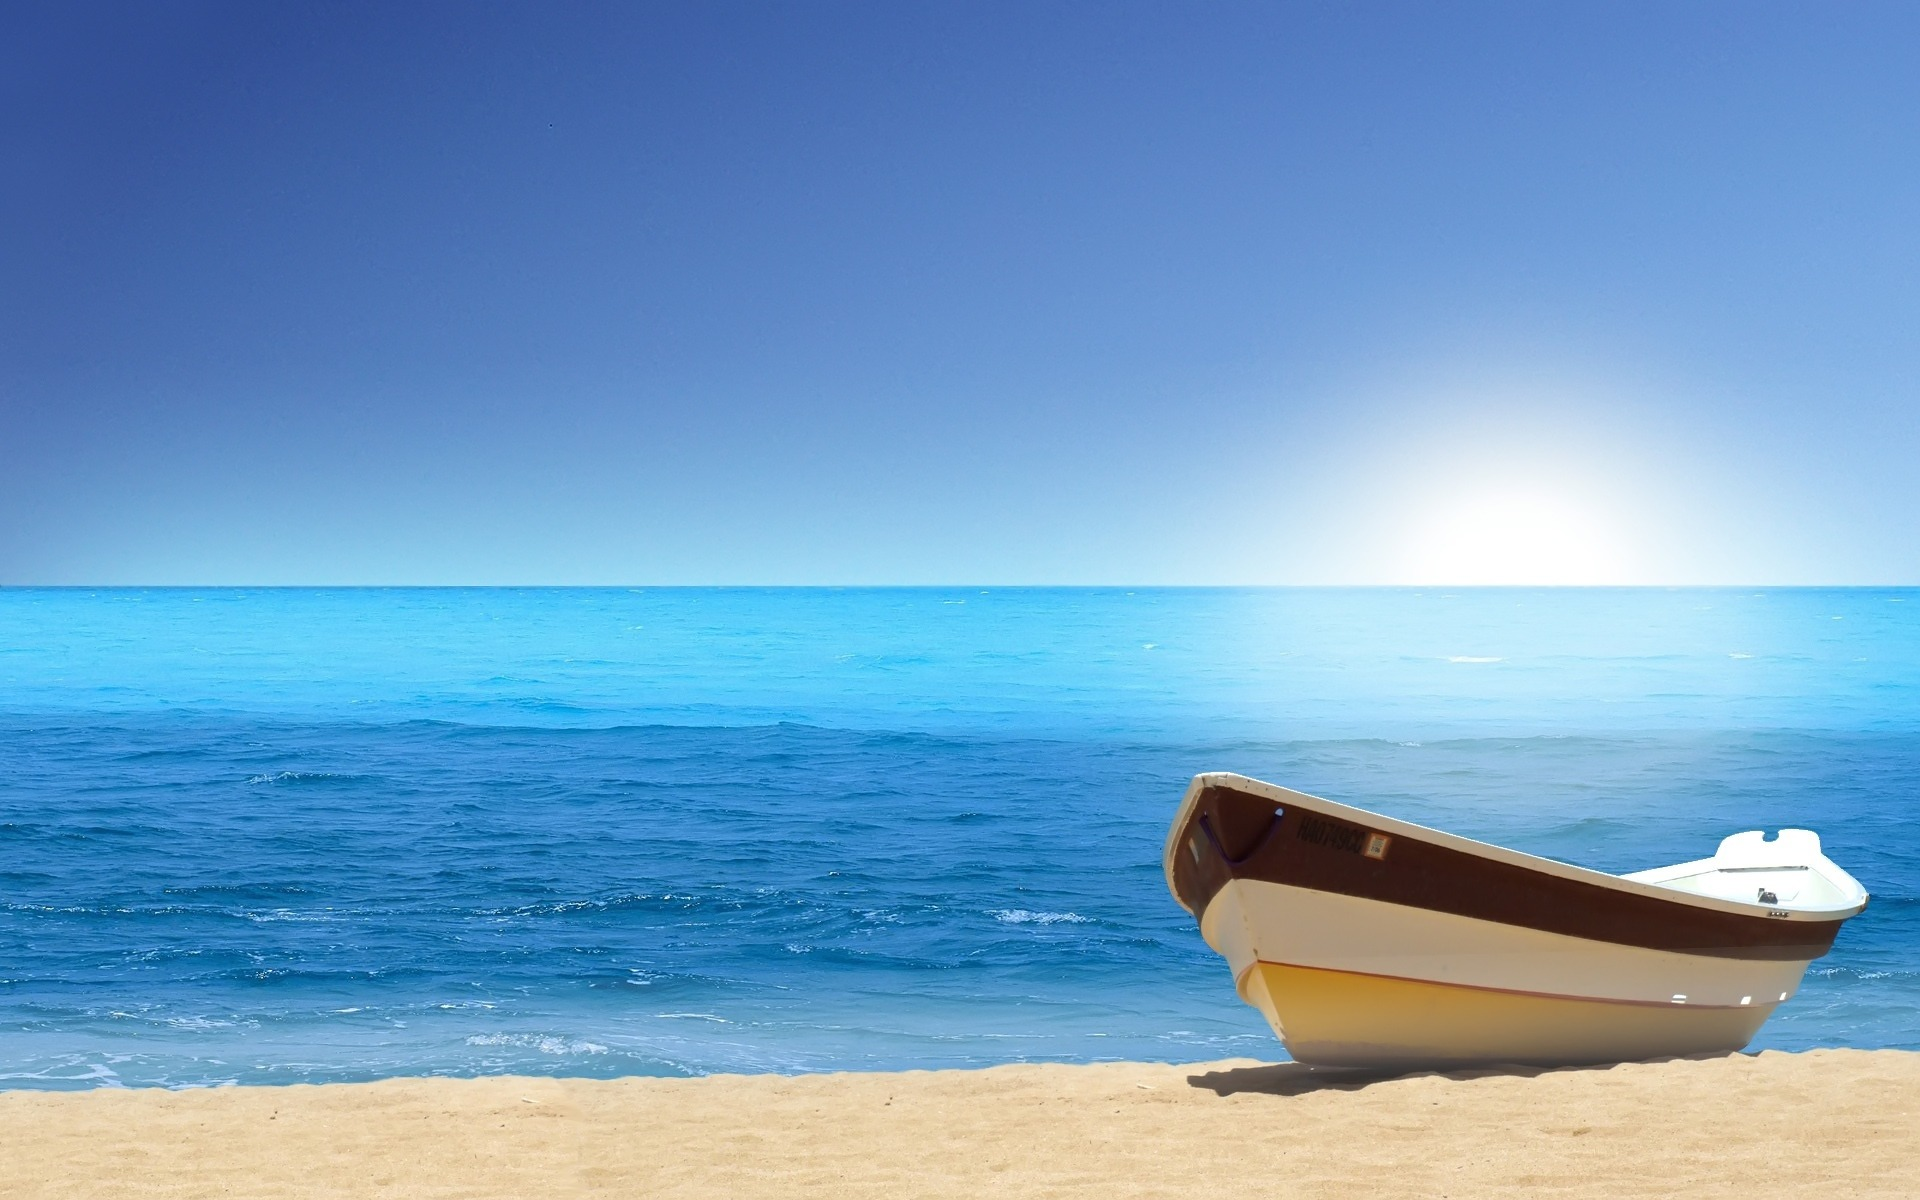 Sunny Day Wallpapers - 1920x1200 - 477302